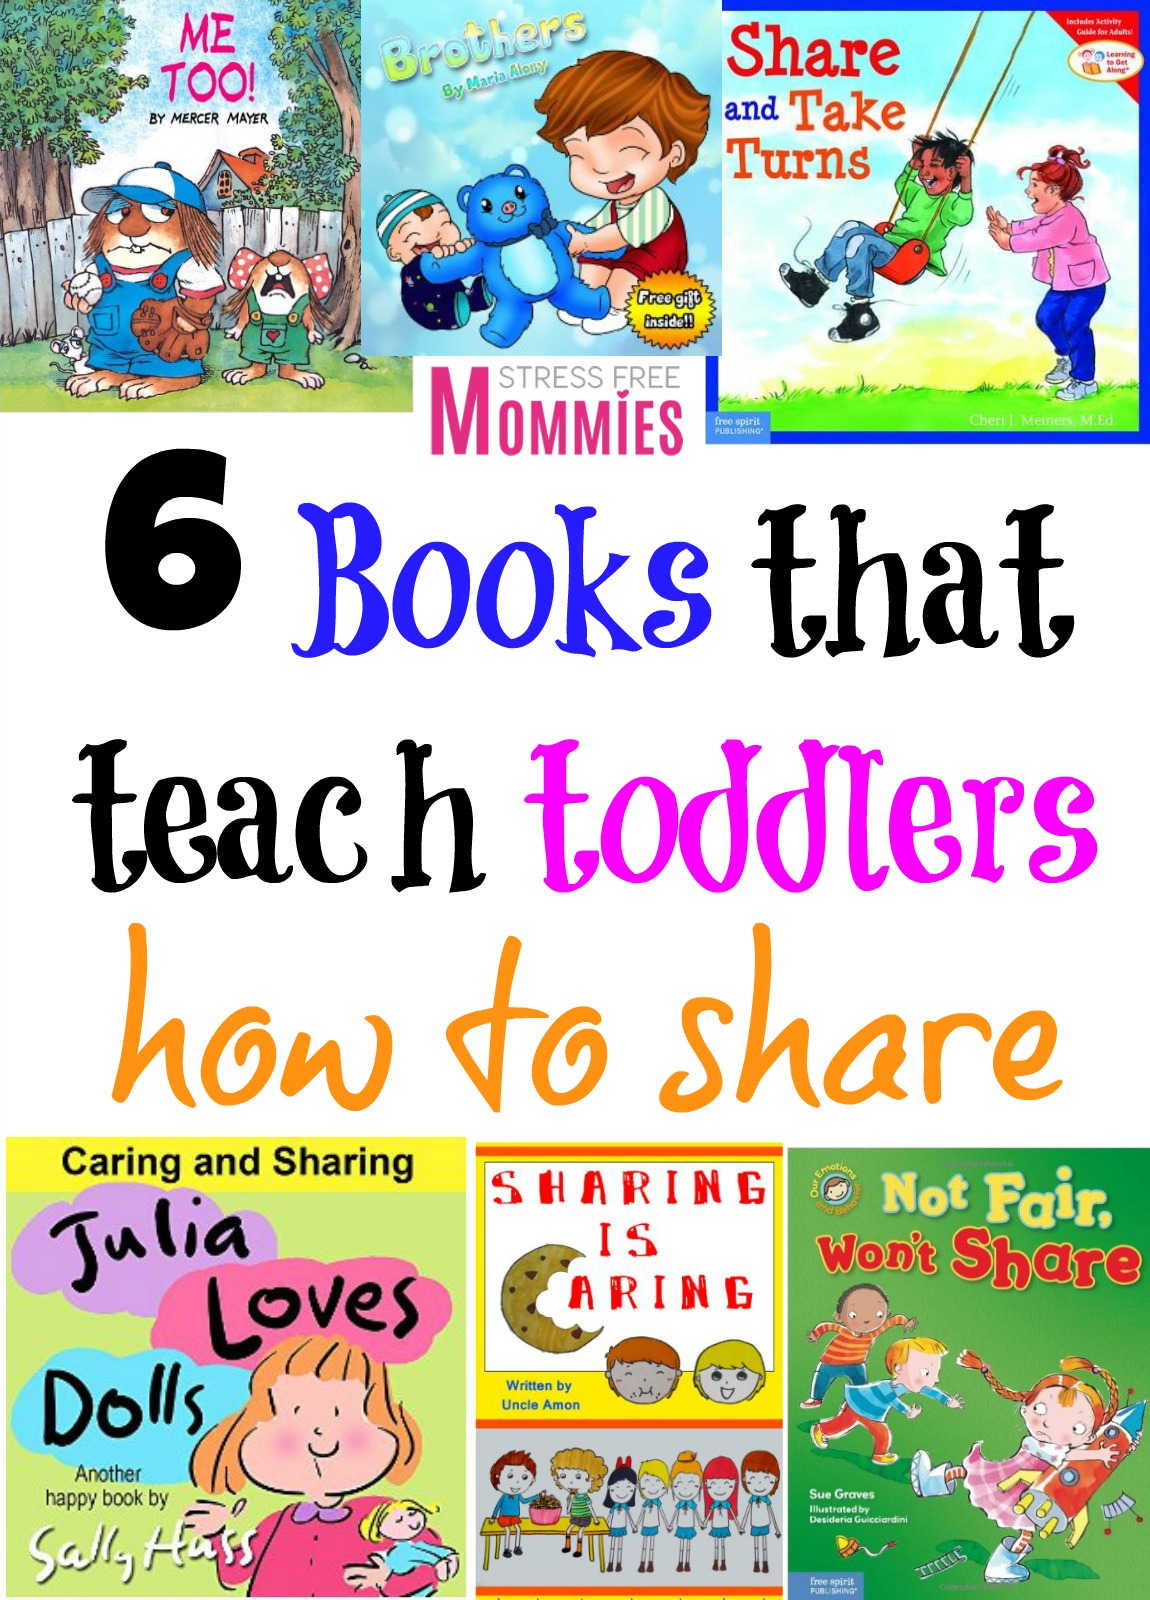 6 books that teach toddlers how to share - Stress Free Mommies